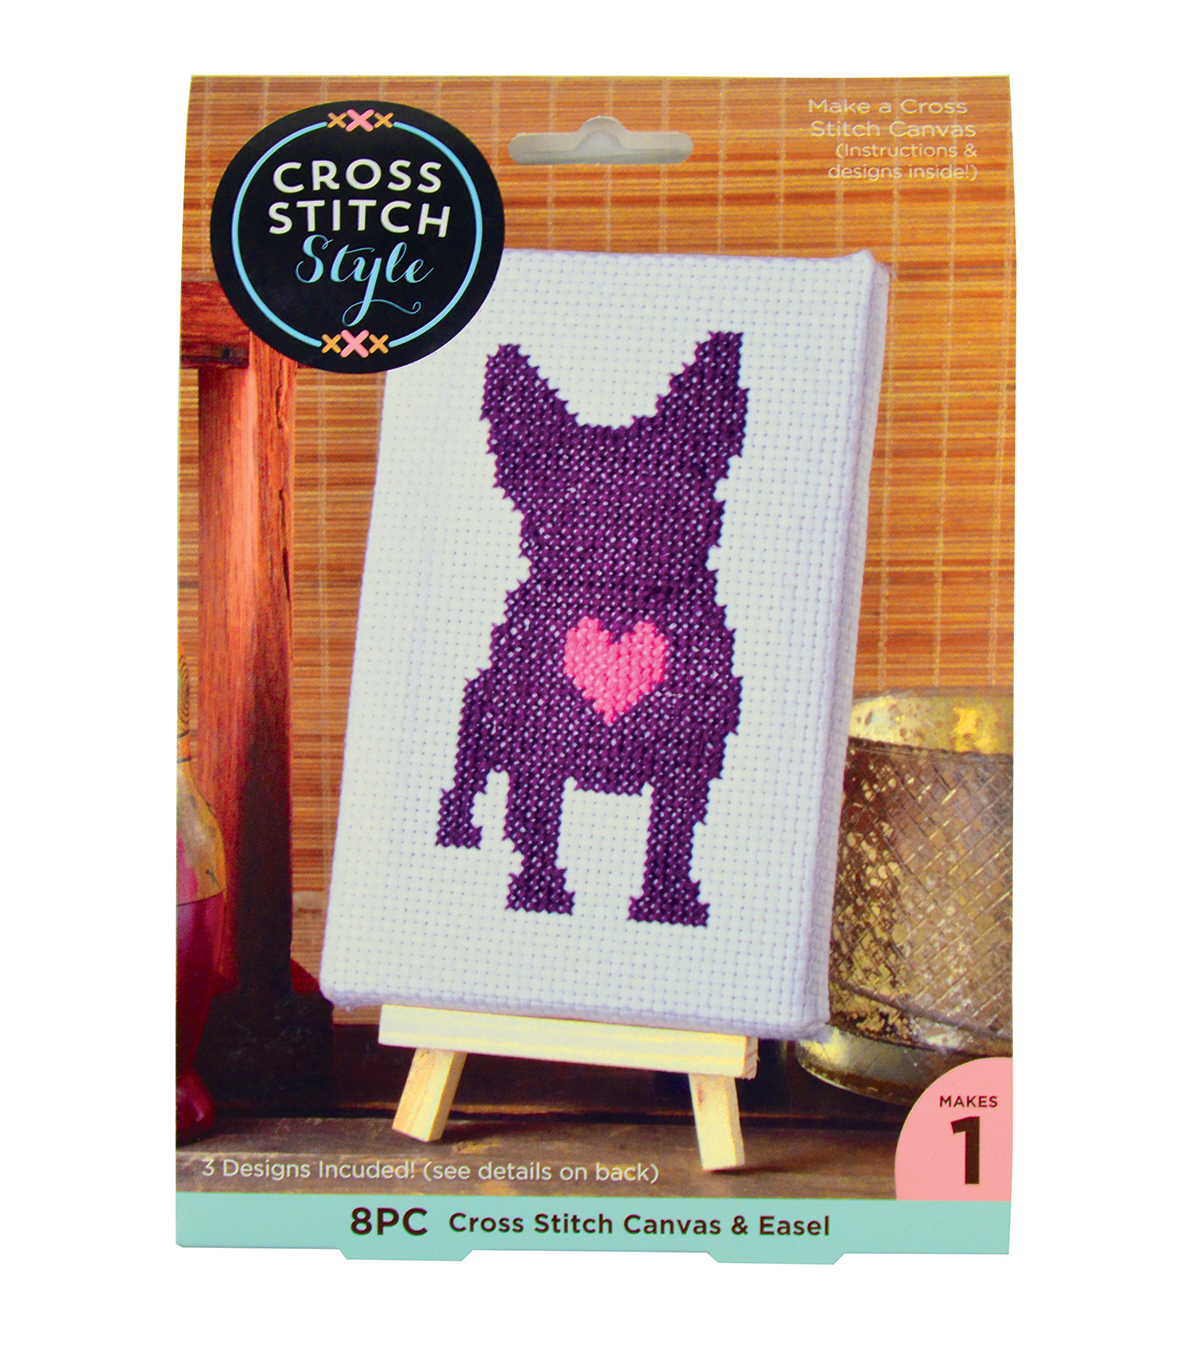 Cross Stitch Style Cross Stitch Canvas & Easel